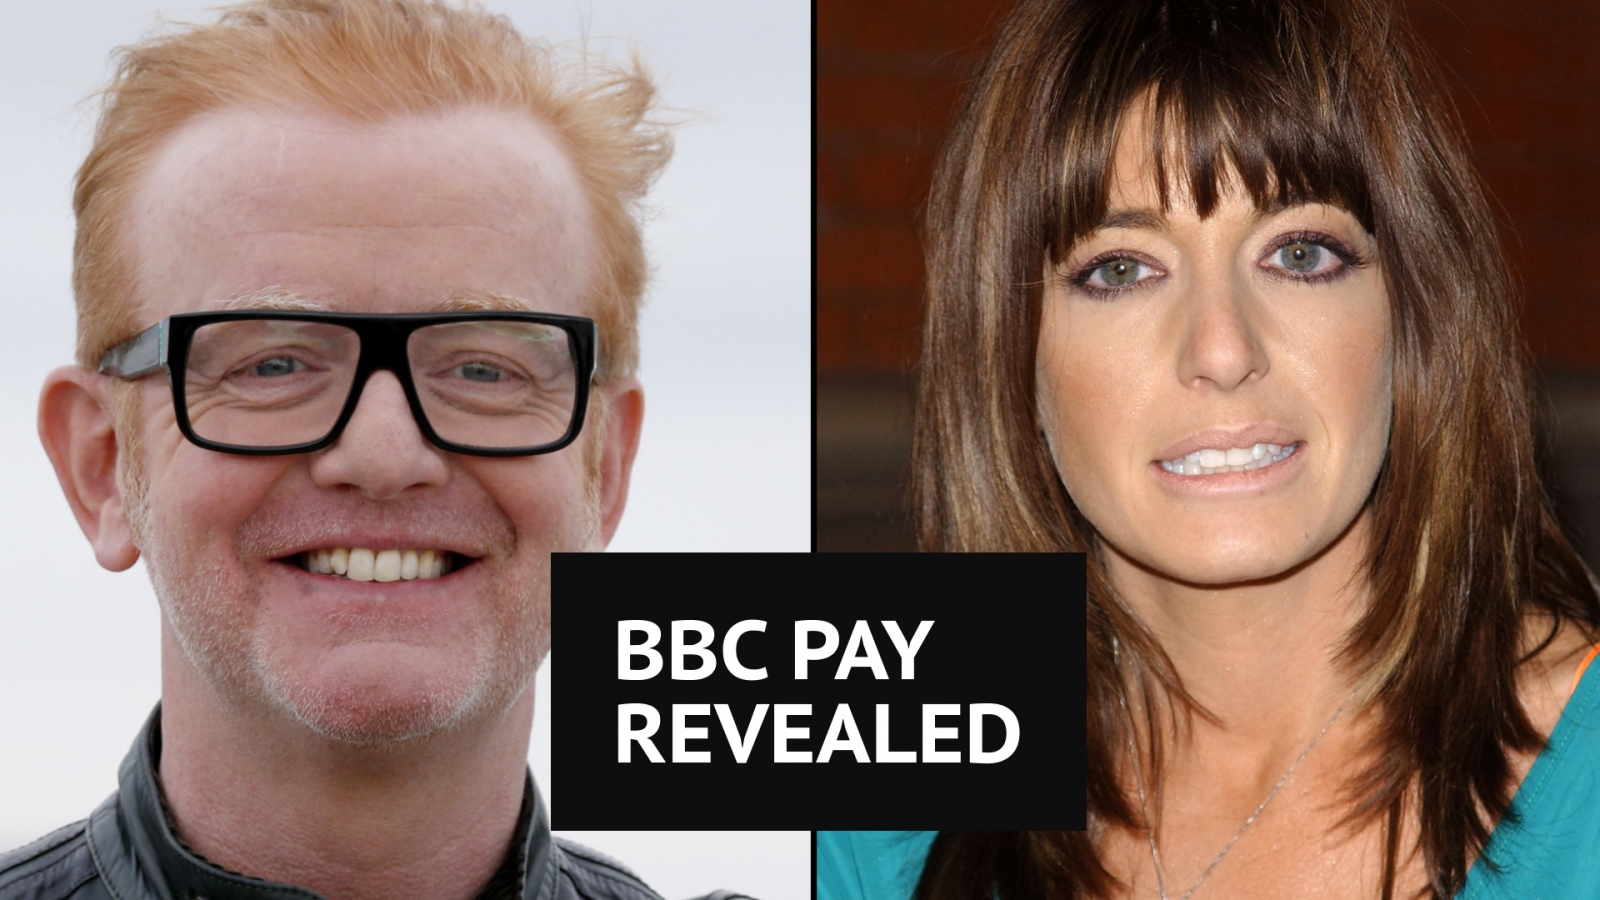 BBC Pay: Five Things We Learned After Top Earners Revealed